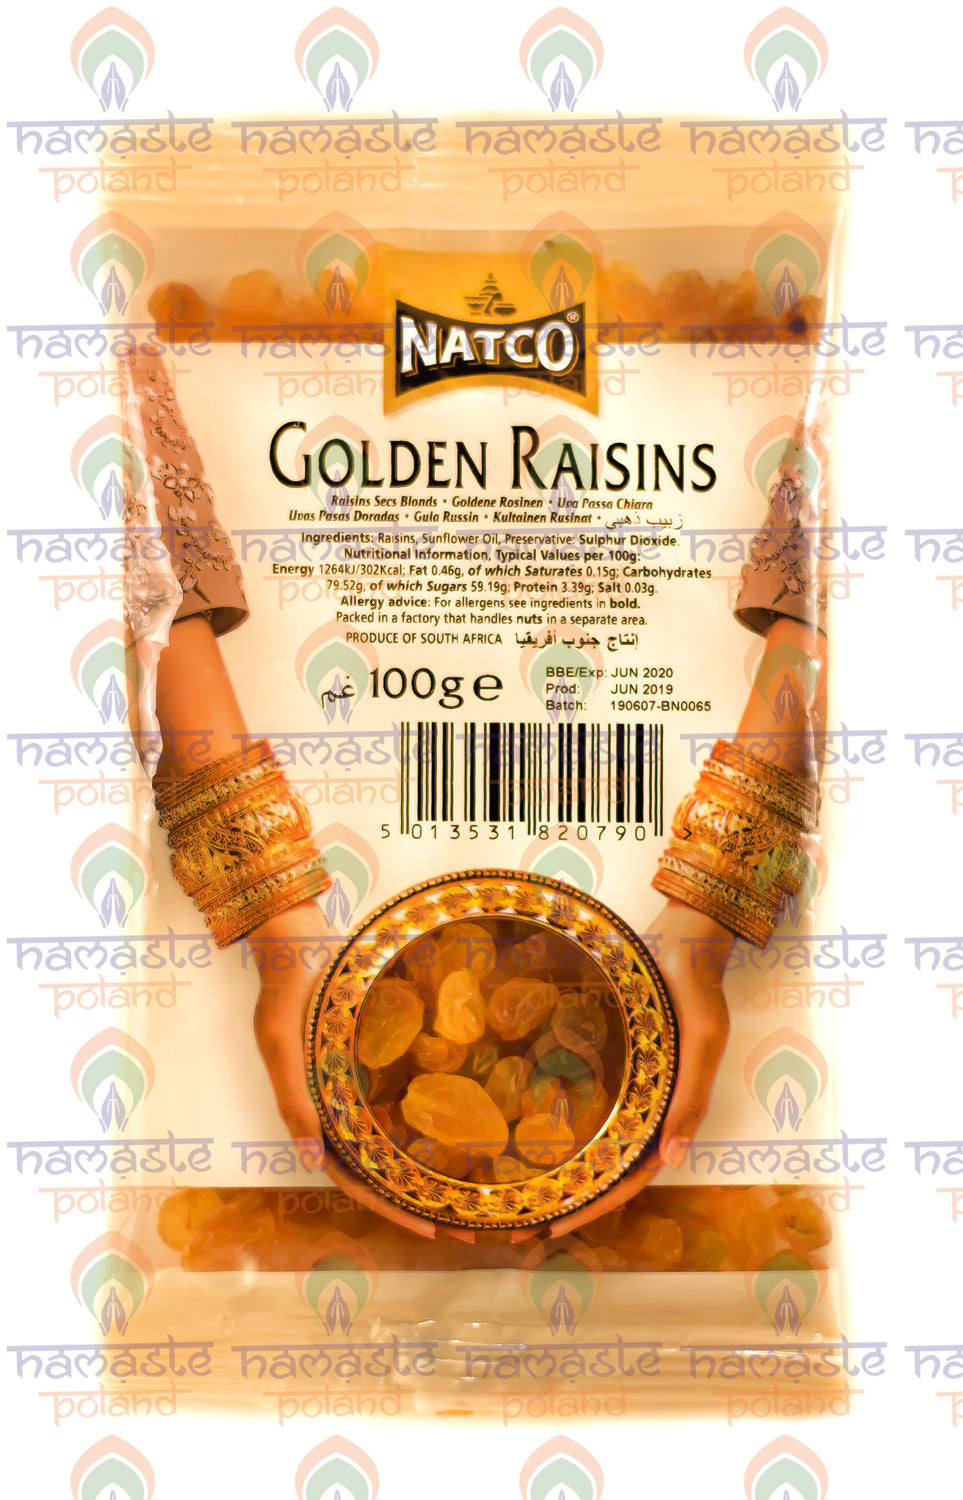 NATCO Golden Raisins 100g